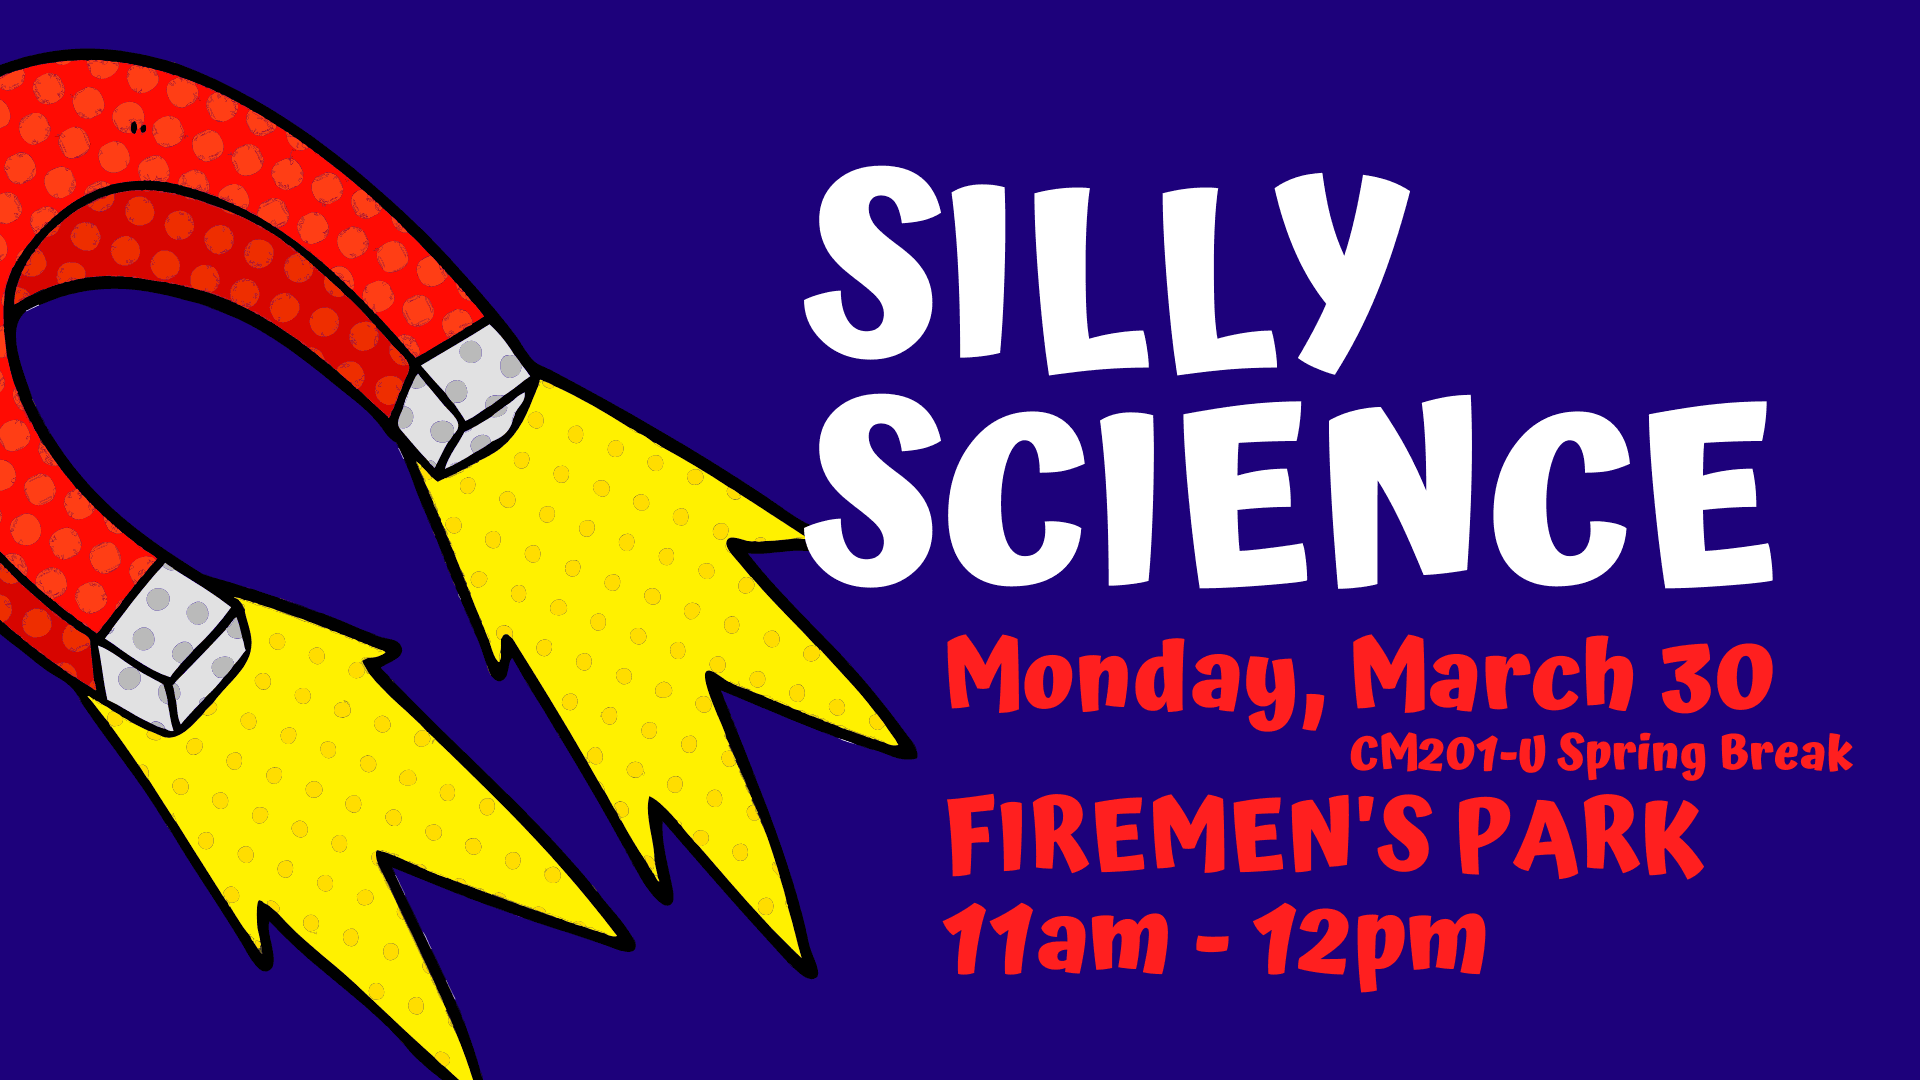 SILLY SCIENCE - March 30